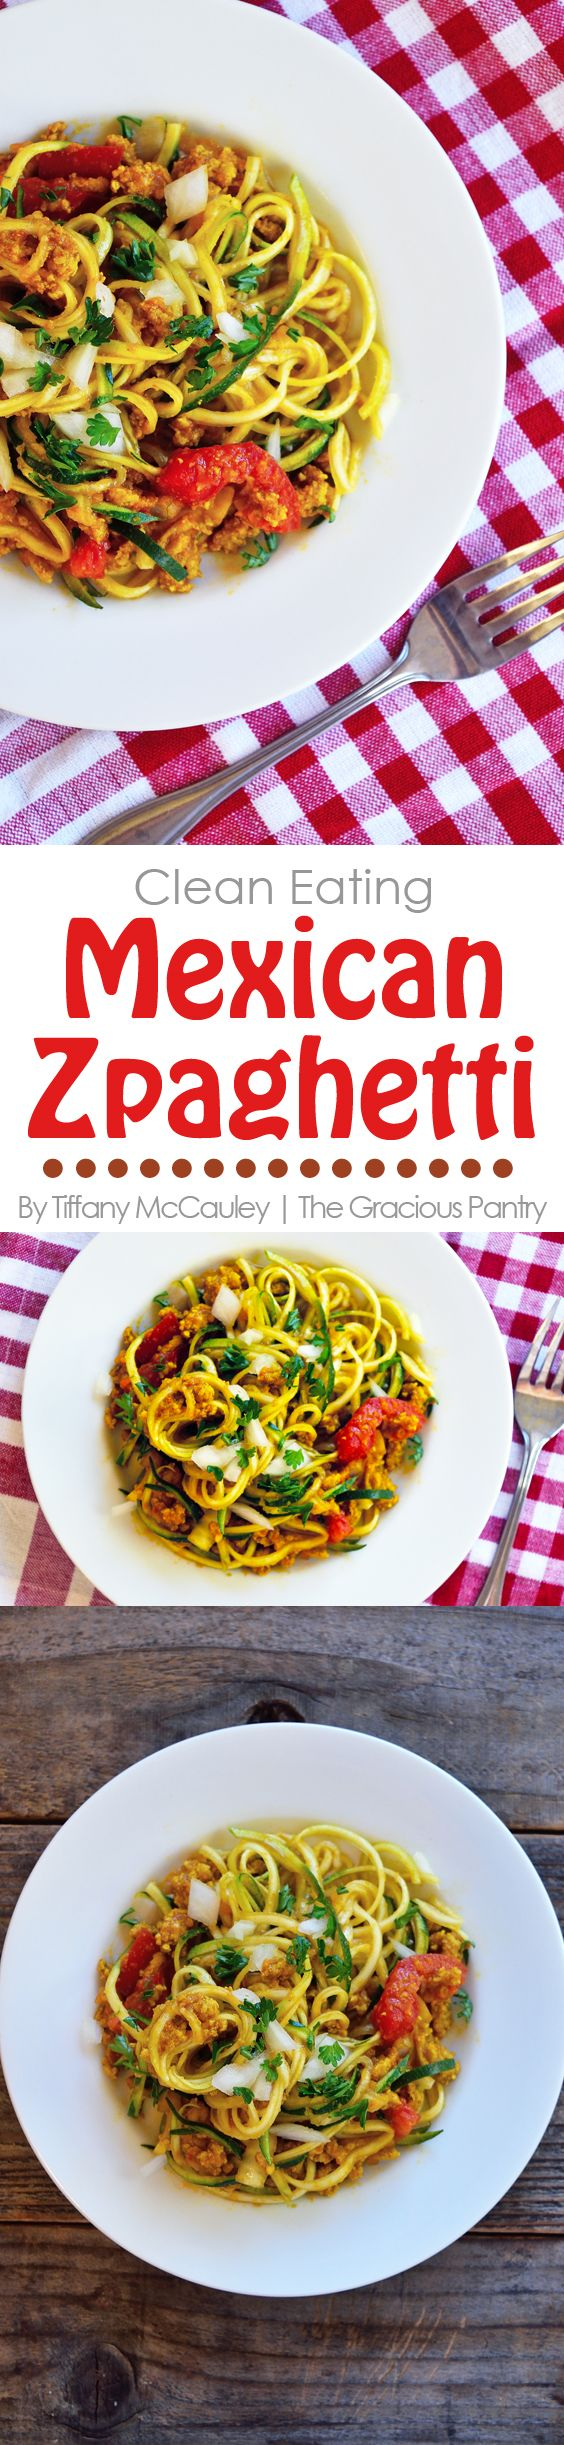 Need a new and tasty Zoodles recipe? This dish is filled with spice, Mexican-style goodness from fresh, nutritious produce and lean meat. Enjoy this for #TurkeyTuesday ! @fosterfarms ~ http://www.thegraciouspantry.com